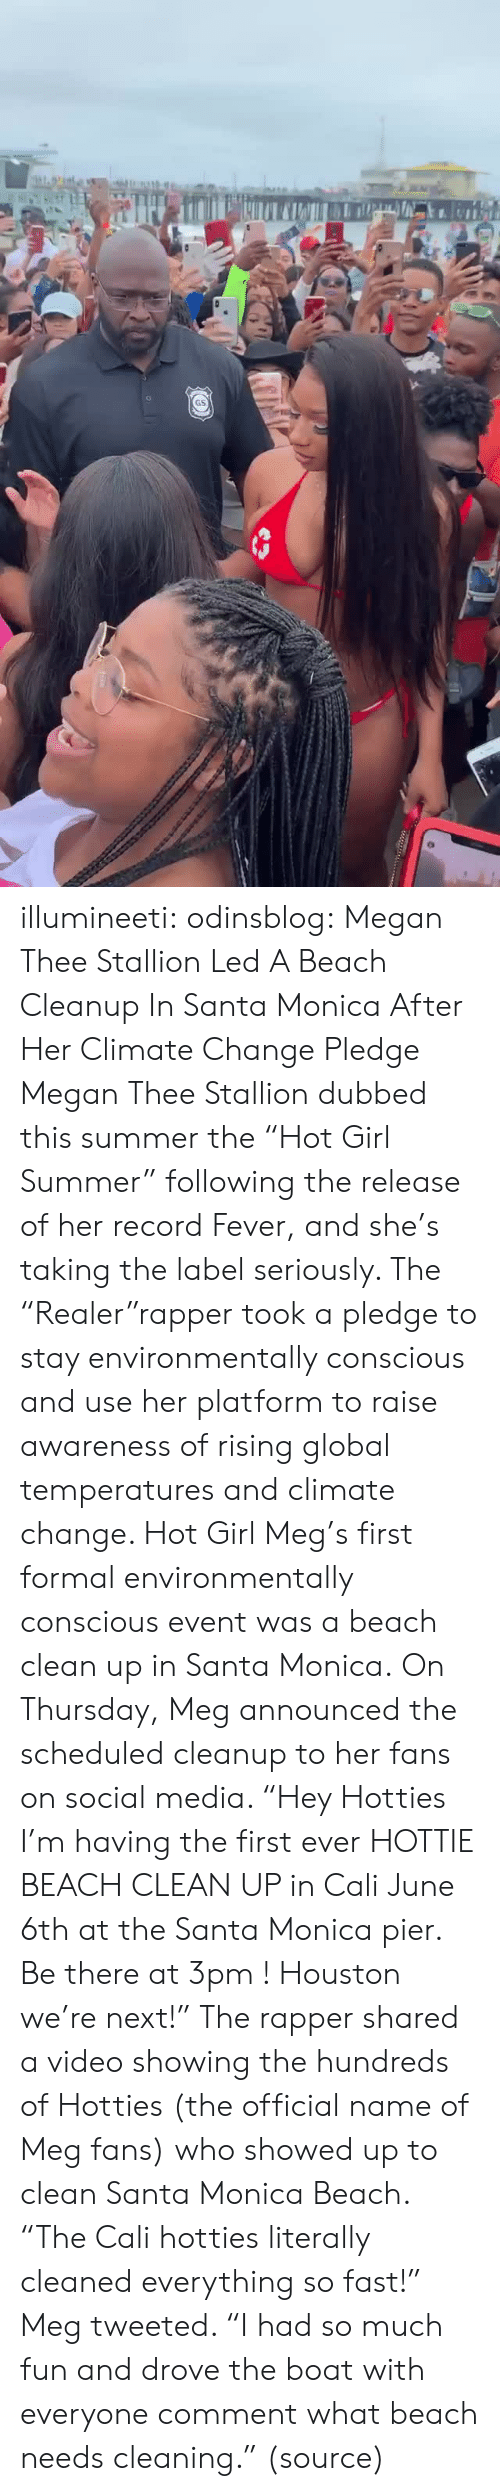 "cali: GS illumineeti: odinsblog:    Megan Thee Stallion Led A Beach Cleanup In Santa Monica After Her Climate Change Pledge Megan Thee Stallion dubbed this summer the ""Hot Girl Summer"" following the release of her record Fever, and she's taking the label seriously. The ""Realer""rapper took a pledge to stay environmentally conscious and use her platform to raise awareness of rising global temperatures and climate change. Hot Girl Meg's first formal environmentally conscious event was a beach clean up in Santa Monica. On Thursday, Meg announced the scheduled cleanup to her fans on social media. ""Hey Hotties I'm having the first ever HOTTIE BEACH CLEAN UP in Cali June 6th at the Santa Monica pier. Be there at 3pm ! Houston we're next!"" The rapper shared a video showing the hundreds of Hotties (the official name of Meg fans) who showed up to clean Santa Monica Beach. ""The Cali hotties literally cleaned everything so fast!"" Meg tweeted. ""I had so much fun and drove the boat with everyone comment what beach needs cleaning."" (source)"